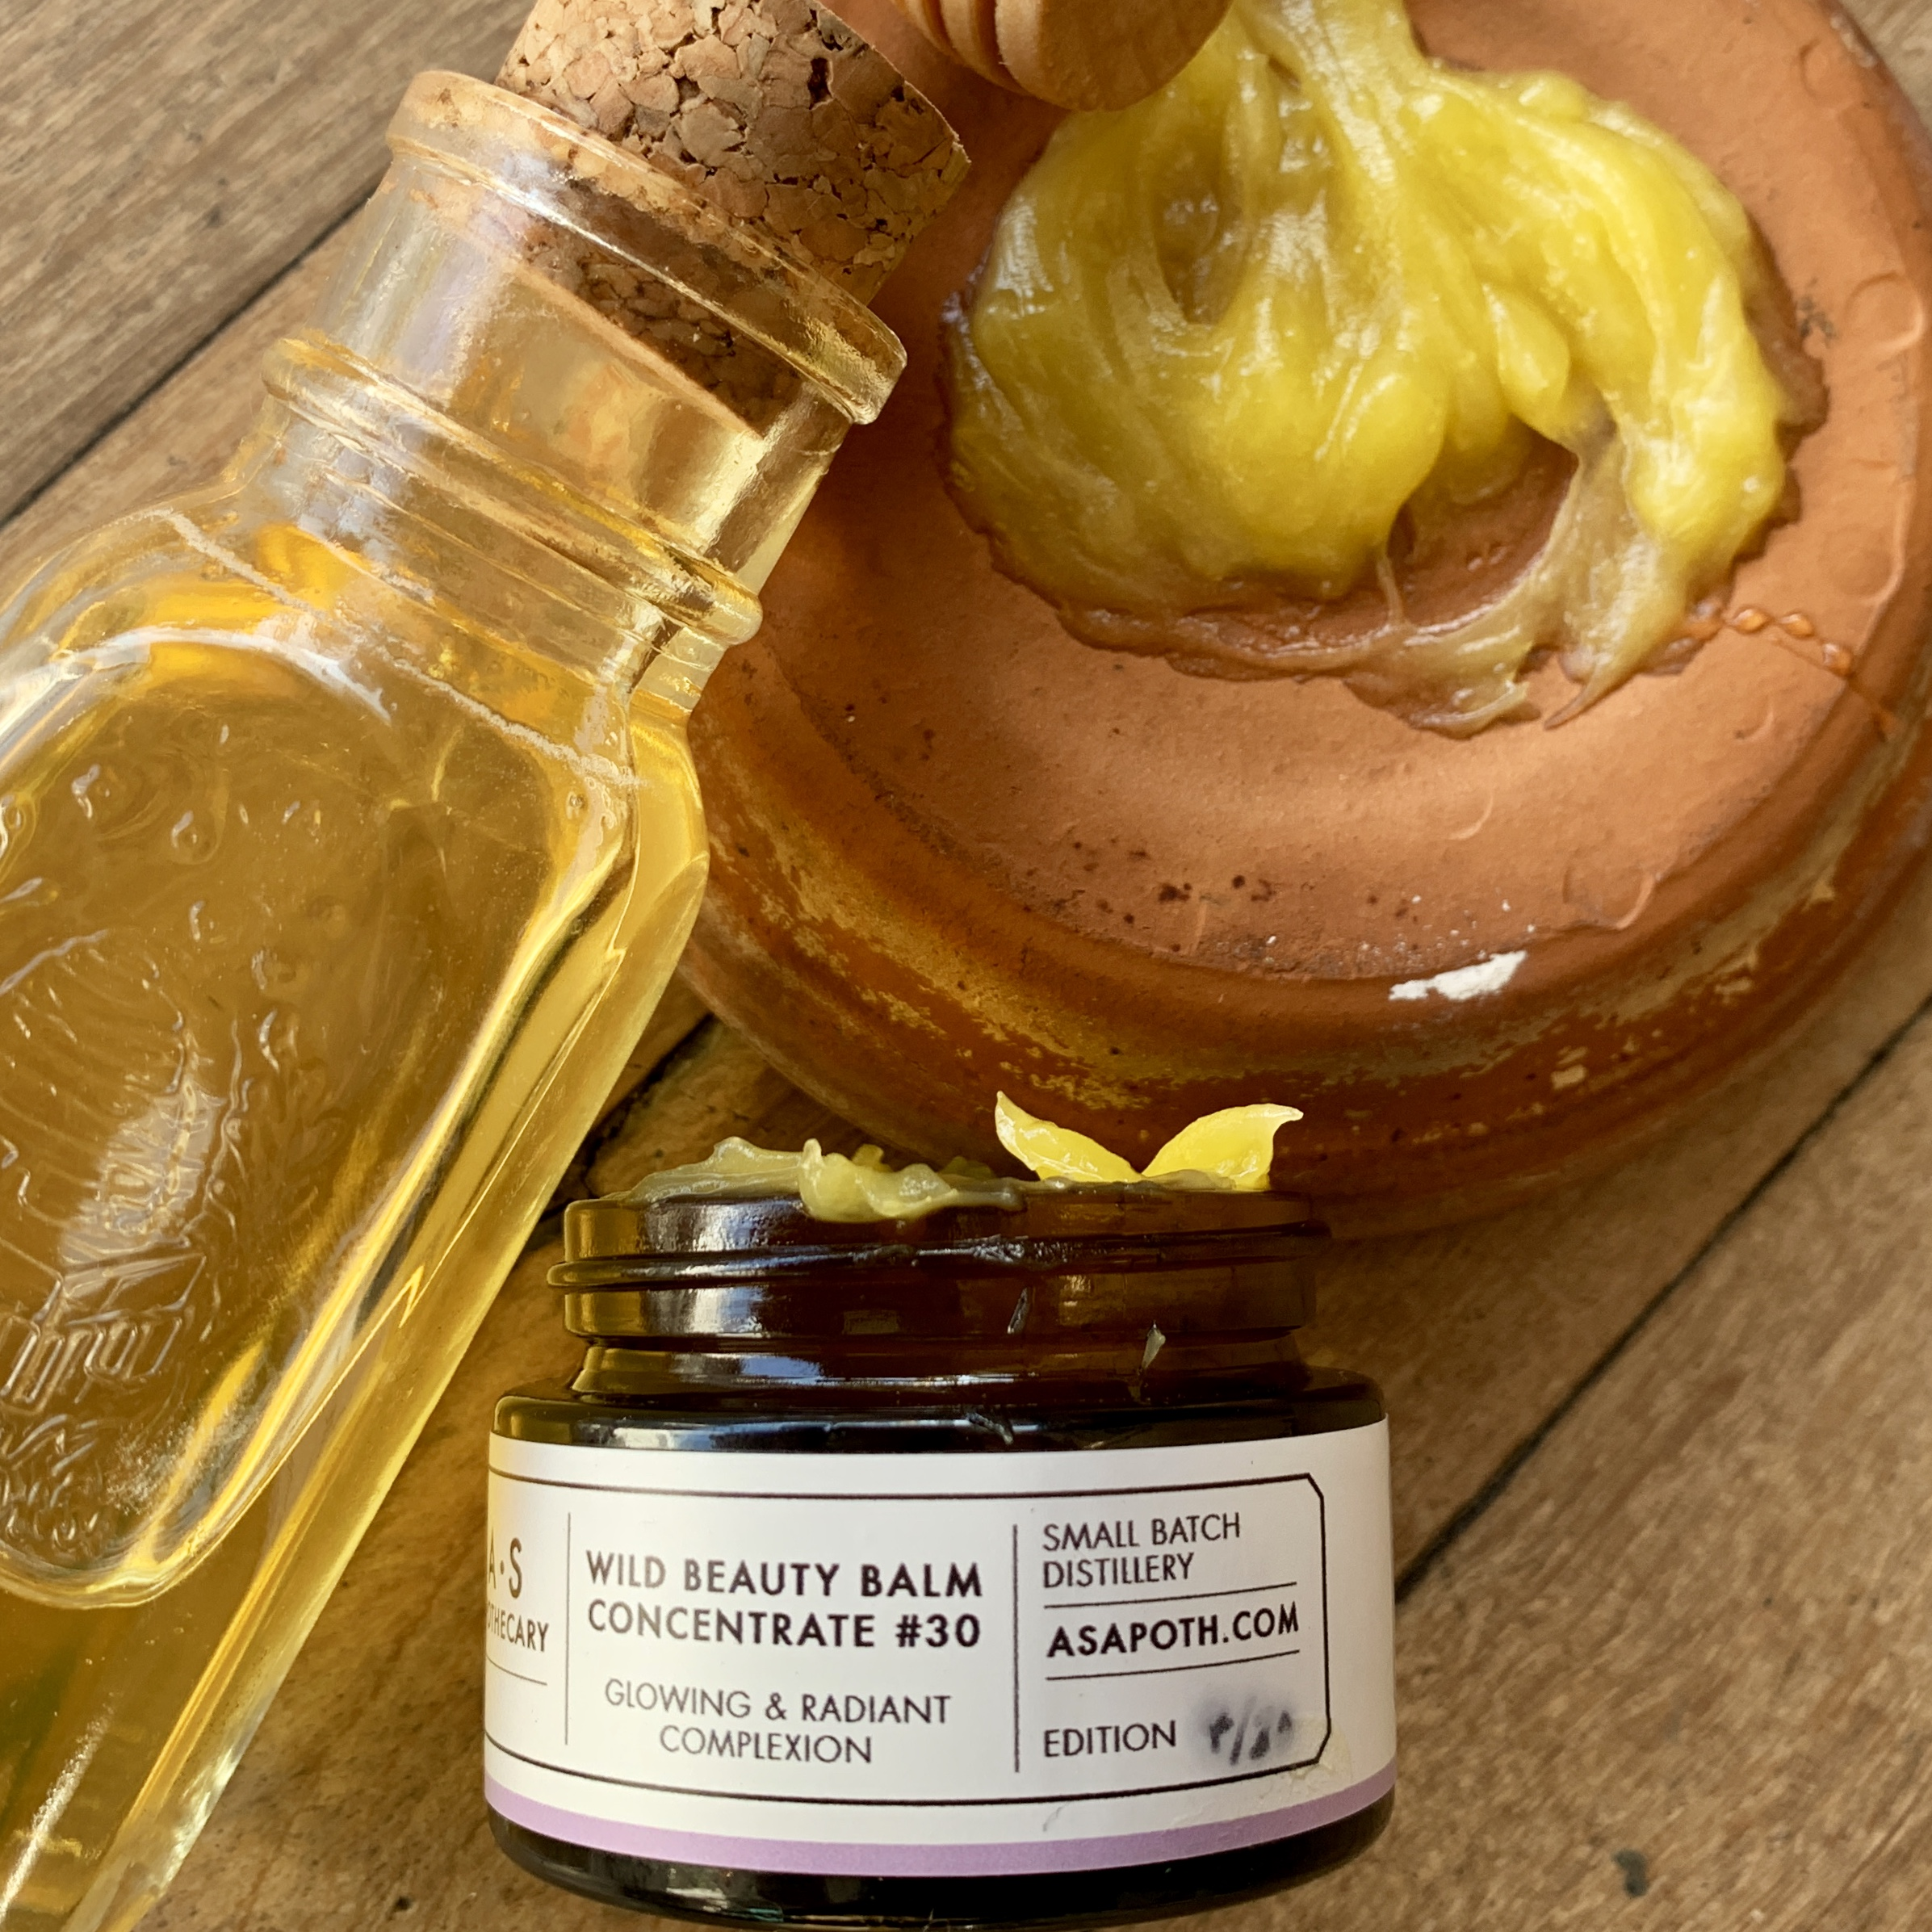 A.S.APOTHECARY Raw Honey with Wild Beauty Balm for a profundingly moisturising and healing facemask and a glowing complexion